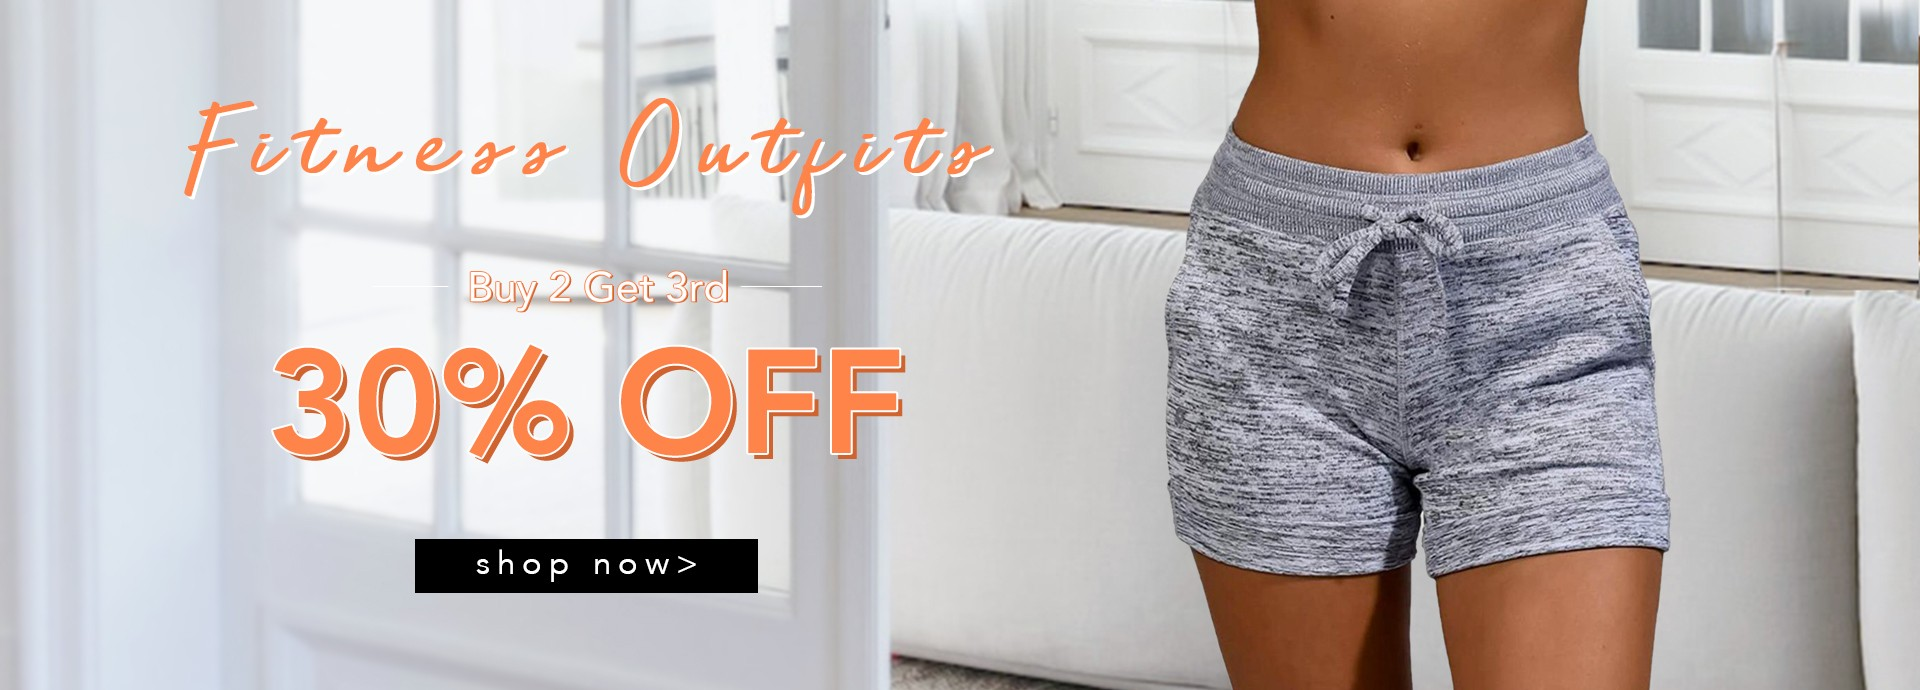 Fittness-Buy 2 Get 3rd 30% OFF